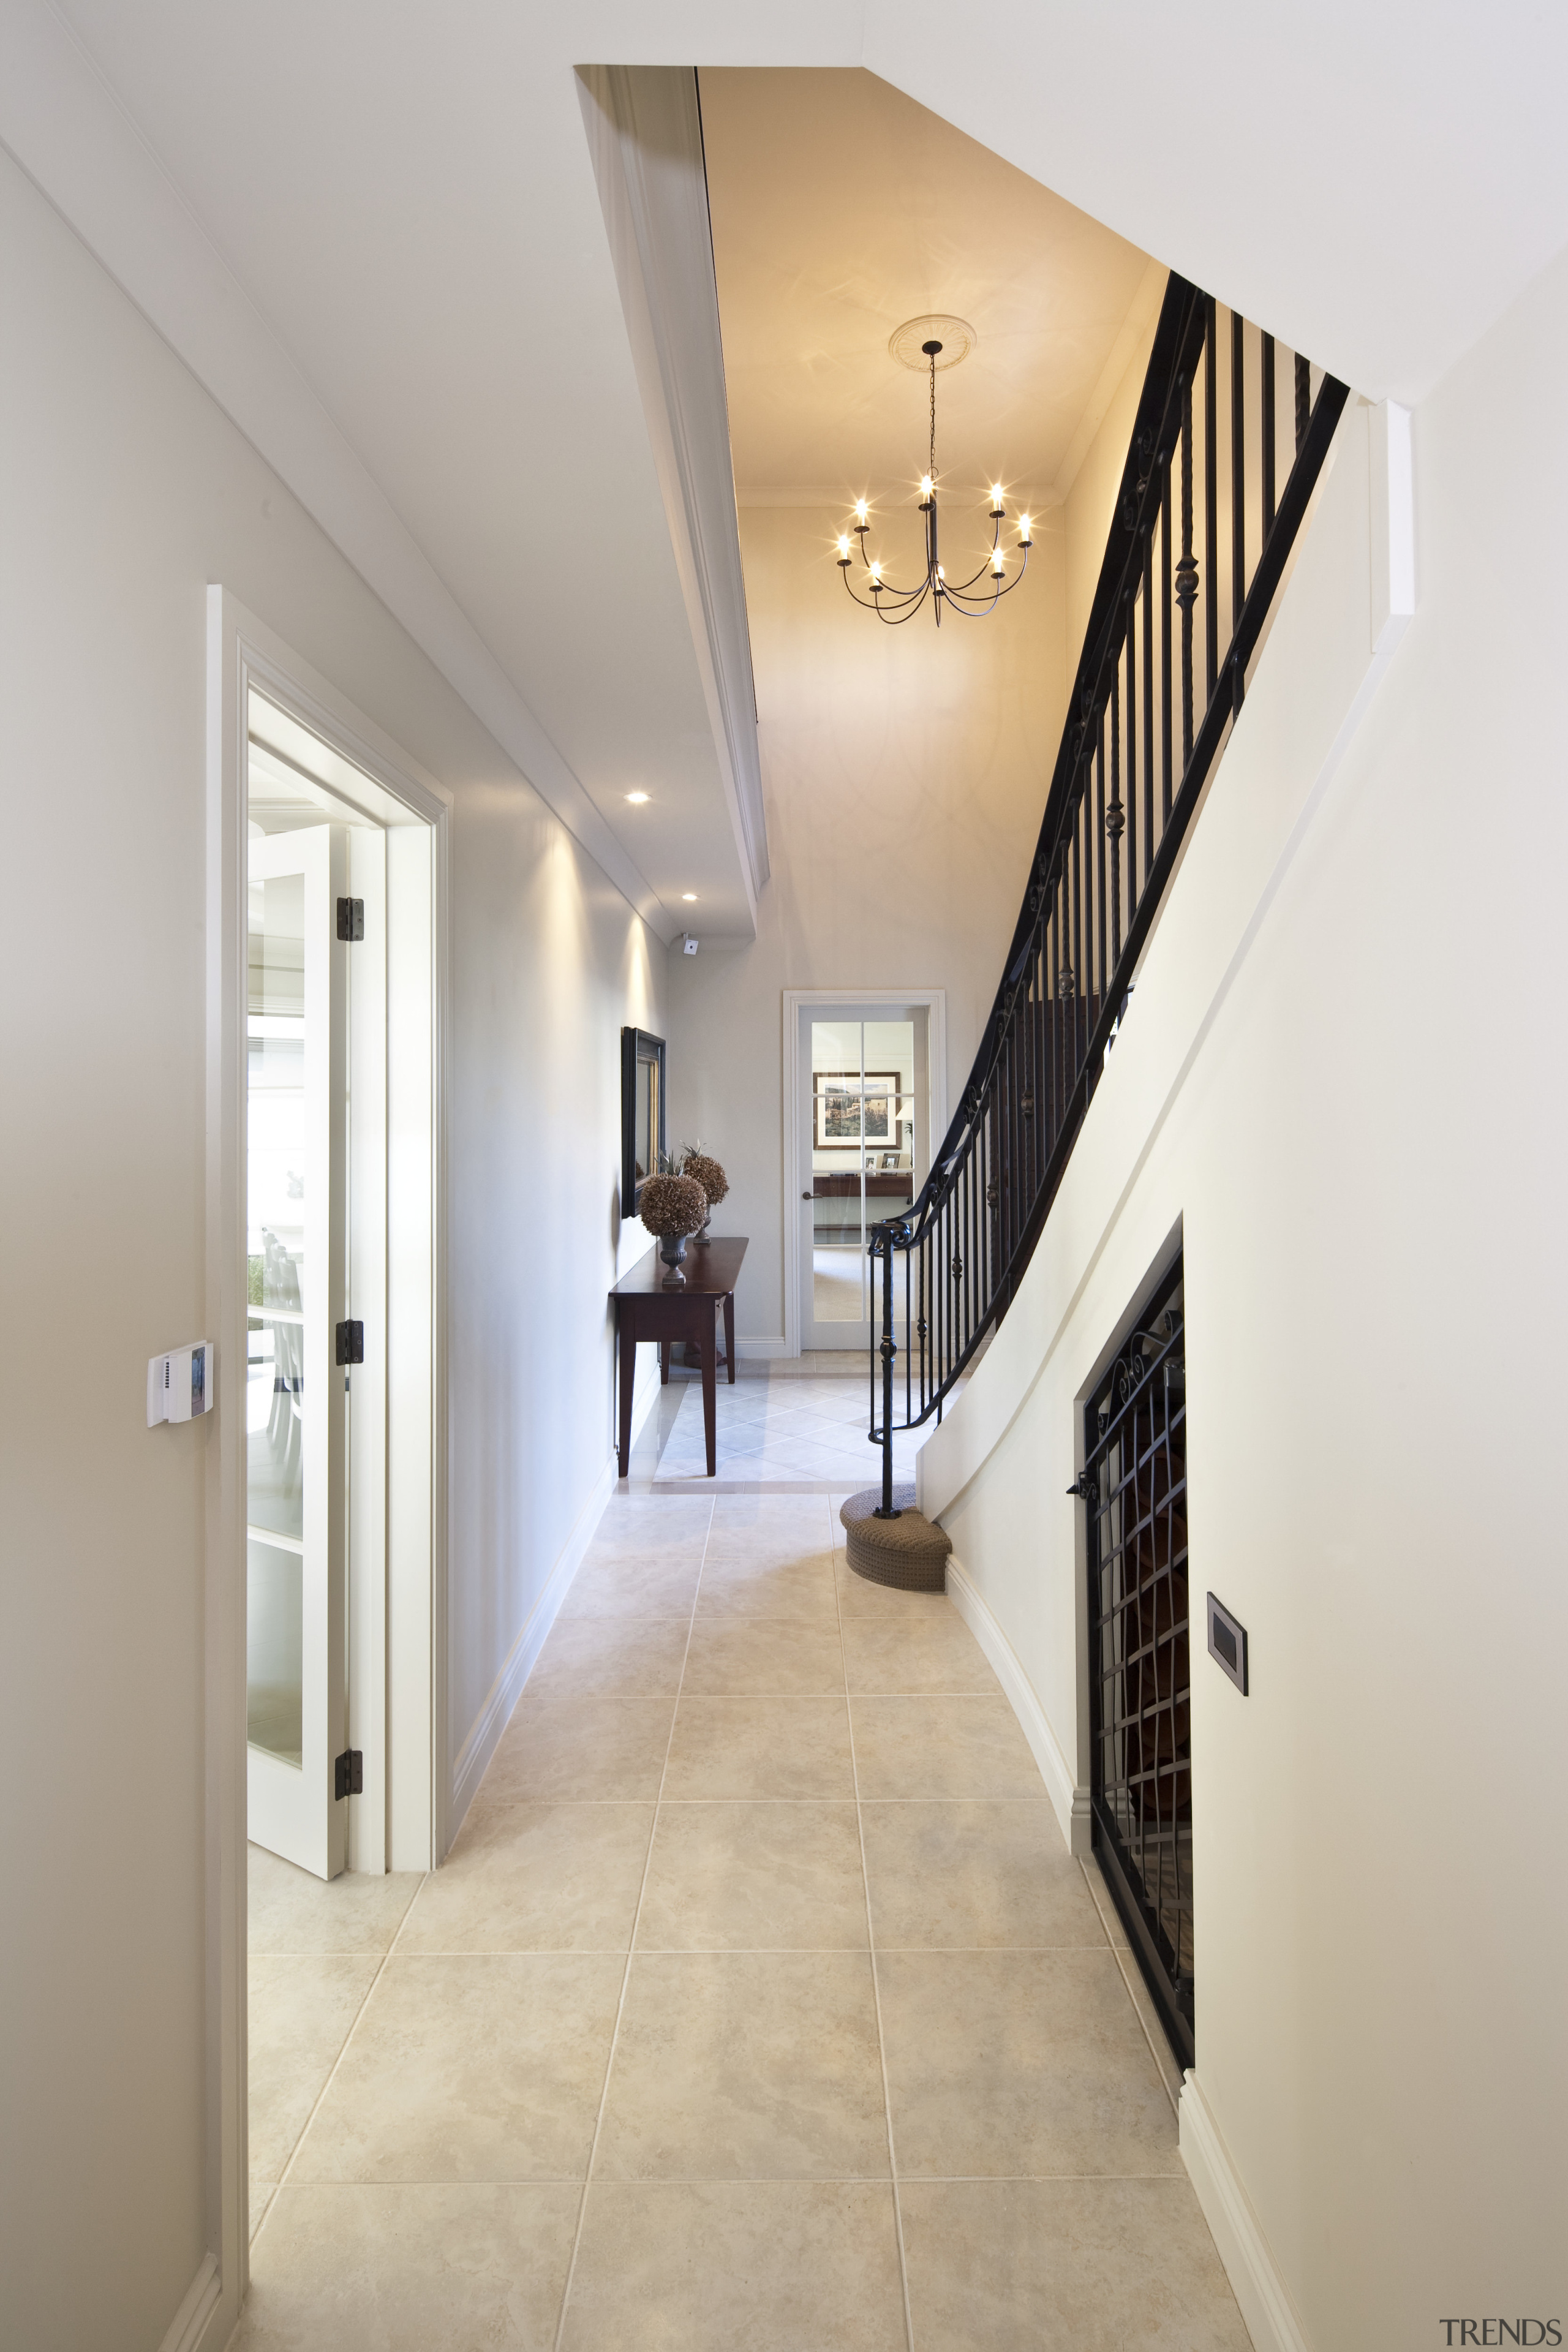 View of a hallway with tiled floors. - apartment, architecture, ceiling, daylighting, estate, floor, flooring, hall, handrail, home, house, interior design, lobby, property, real estate, stairs, wall, wood flooring, gray